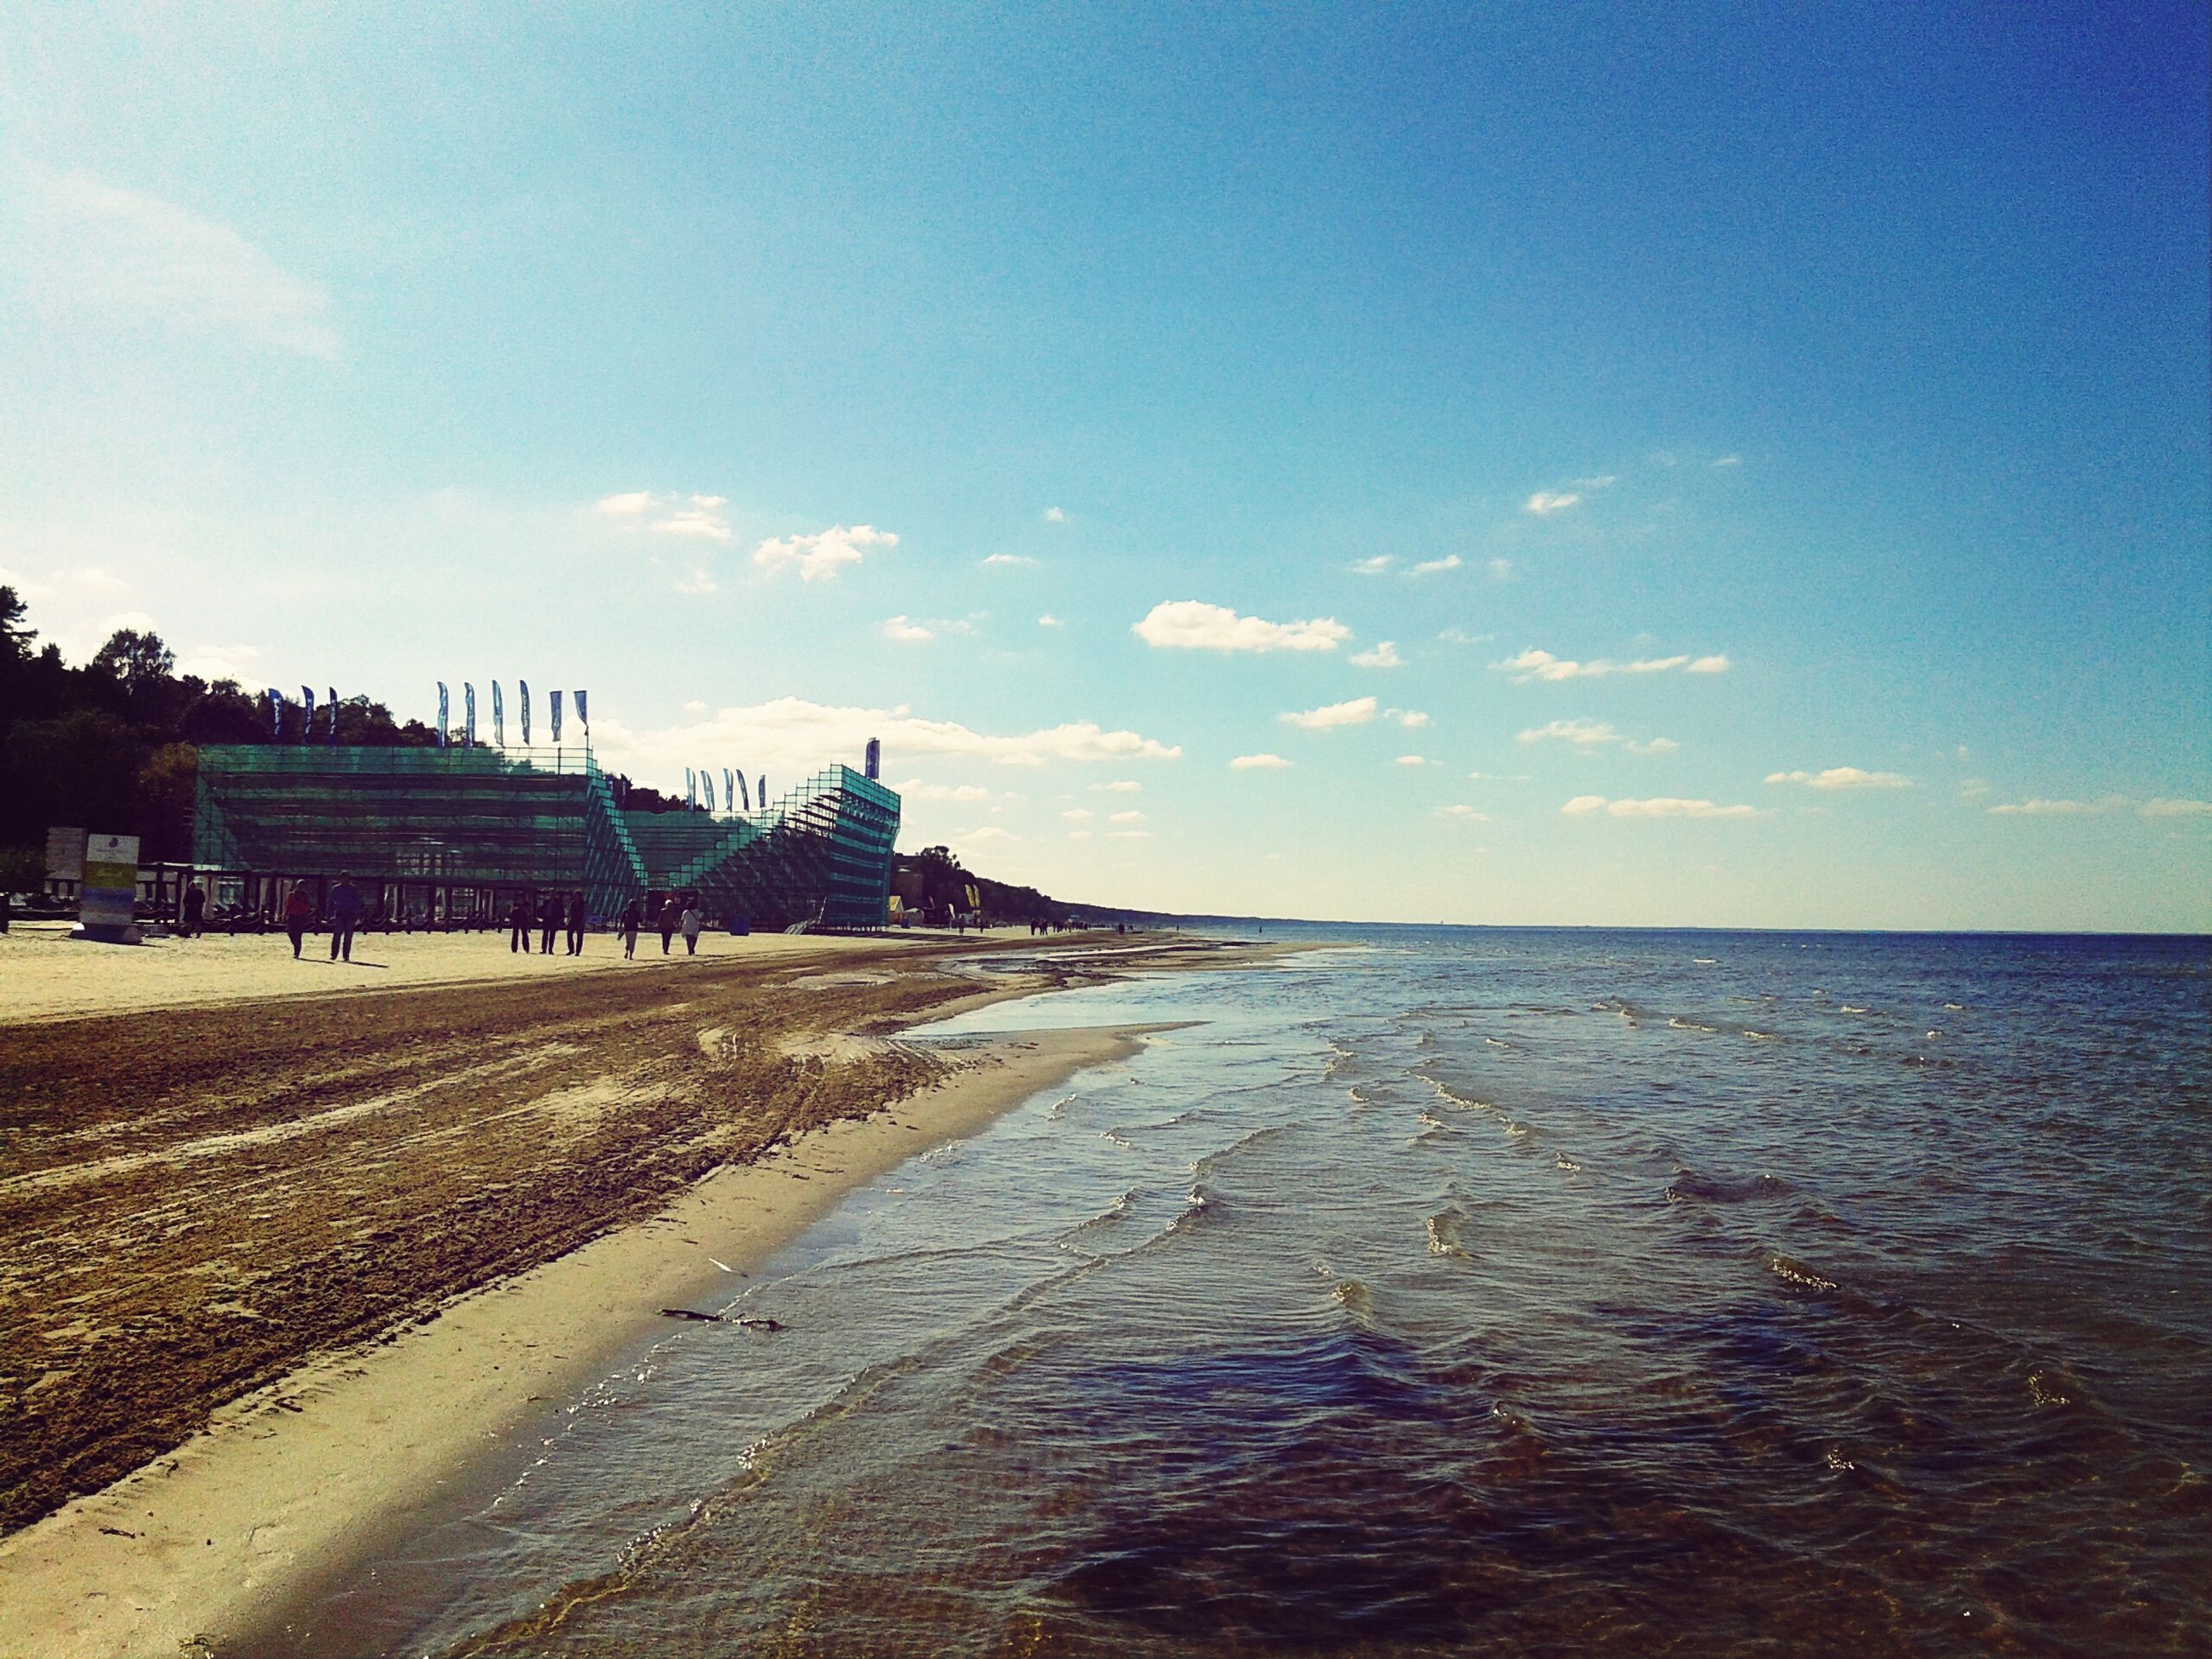 sea, water, horizon over water, sky, beach, built structure, architecture, tranquil scene, building exterior, tranquility, scenics, shore, blue, beauty in nature, nature, sand, pier, cloud, waterfront, idyllic